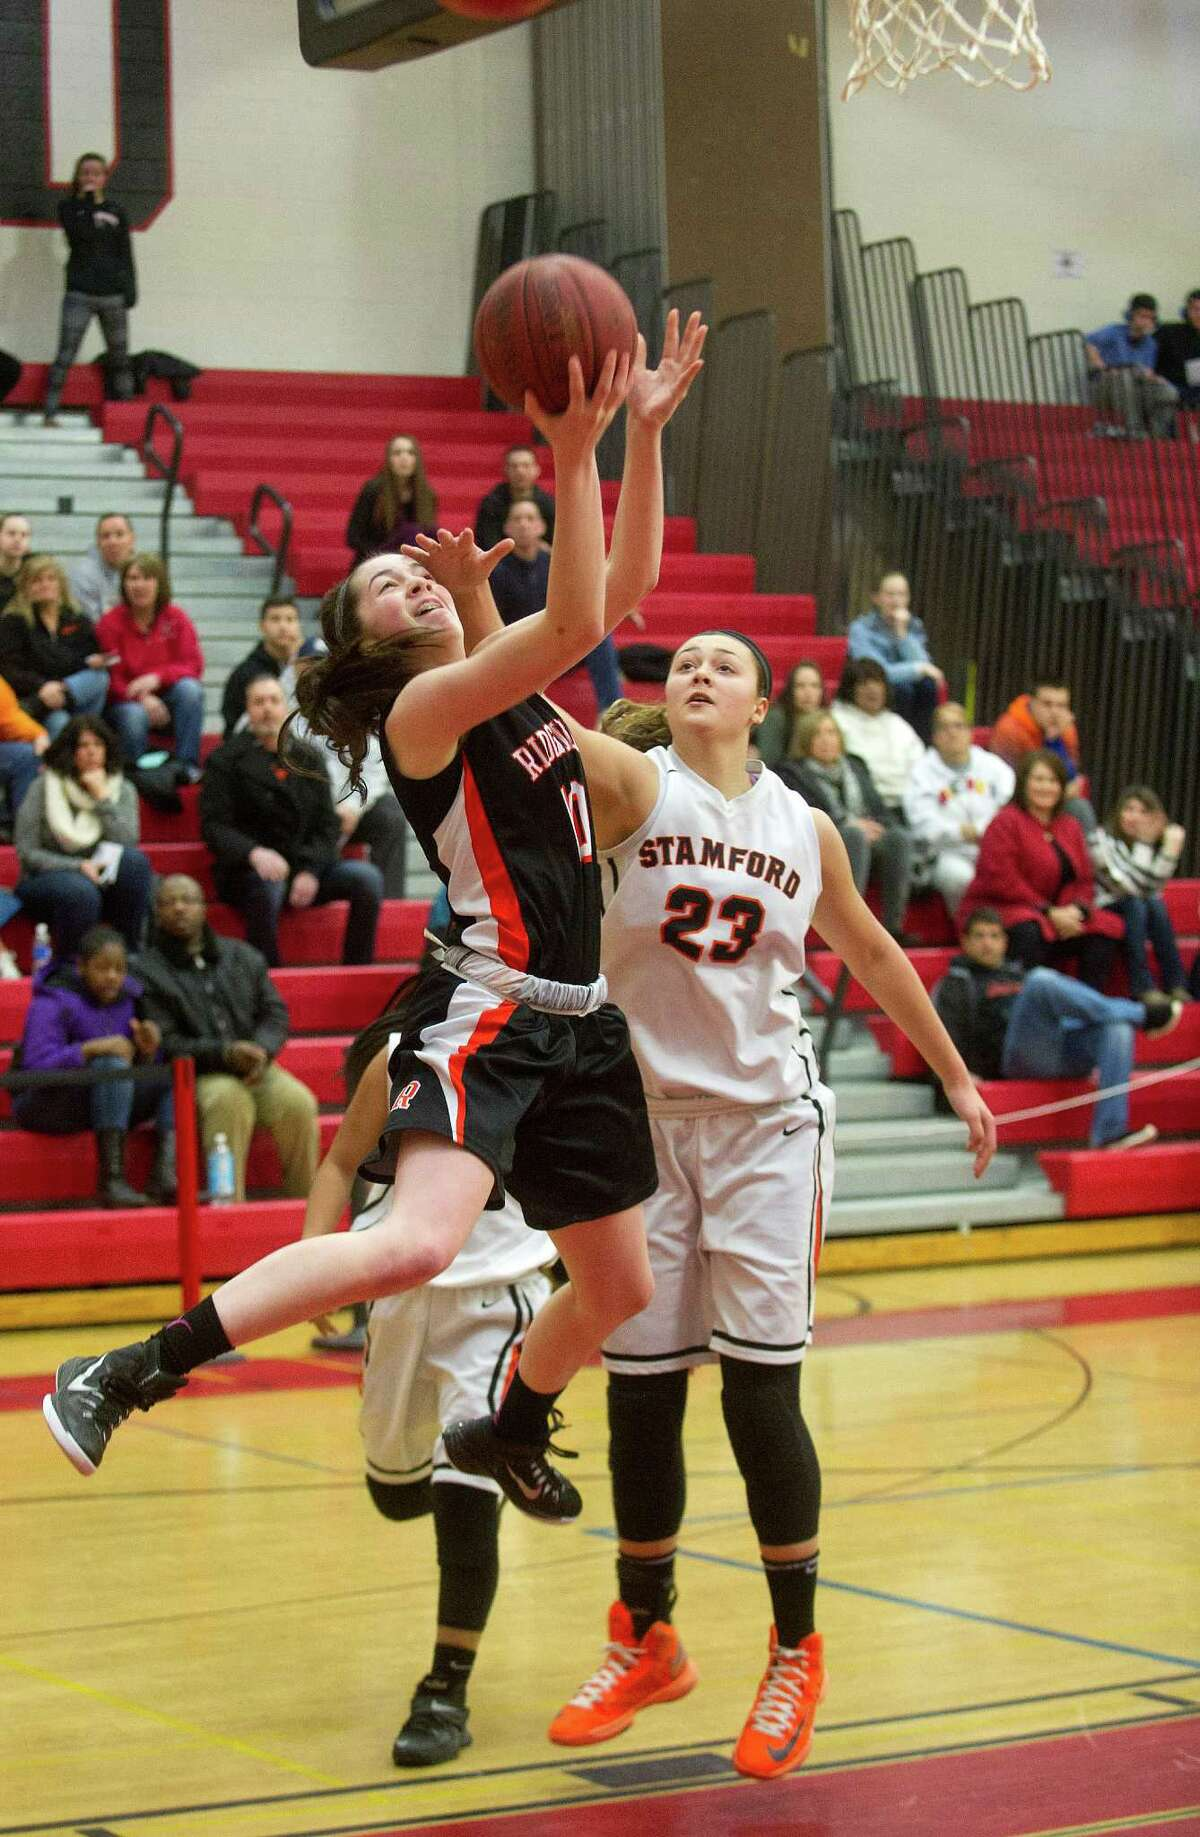 Ridgefield's Meaghan O'Hara takes a shot against Stamford during Saturday's FCIAC quarterfinal game at Fairfield Warde High School on February 21, 2015.